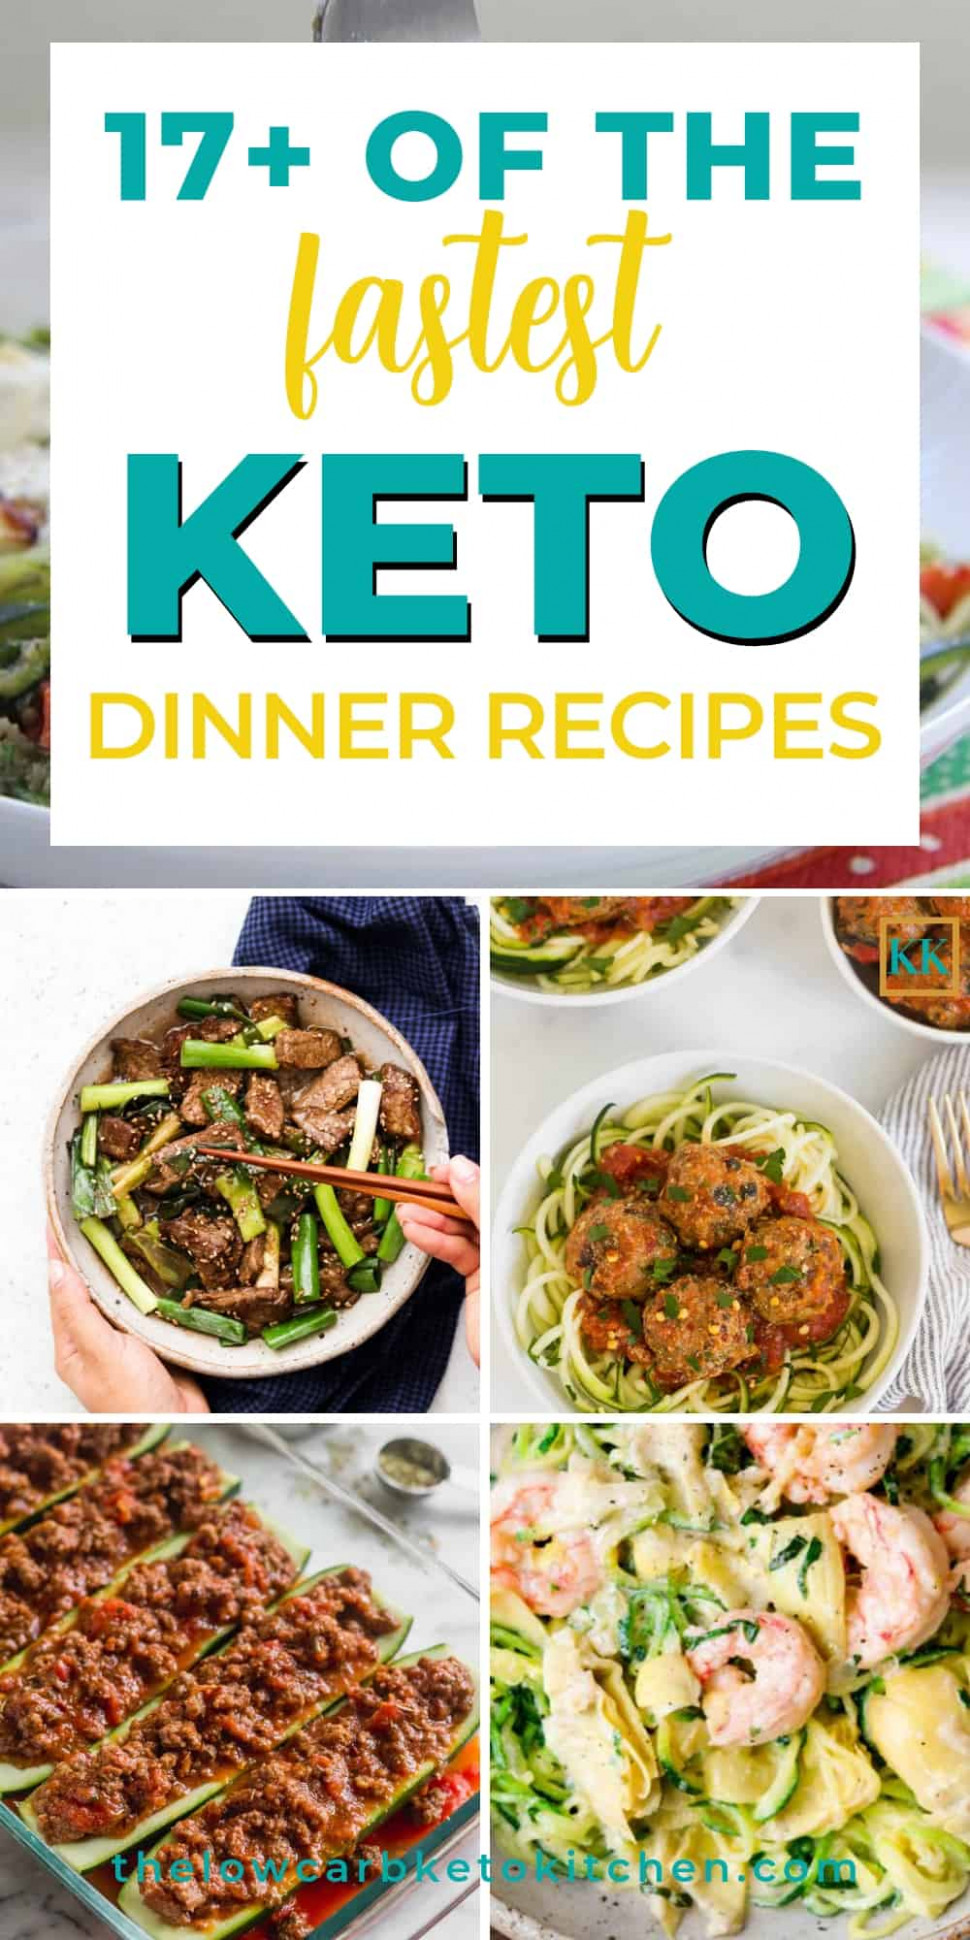 12+ of the Best Fast Keto Dinner Recipes - quick and easy keto dinner recipes